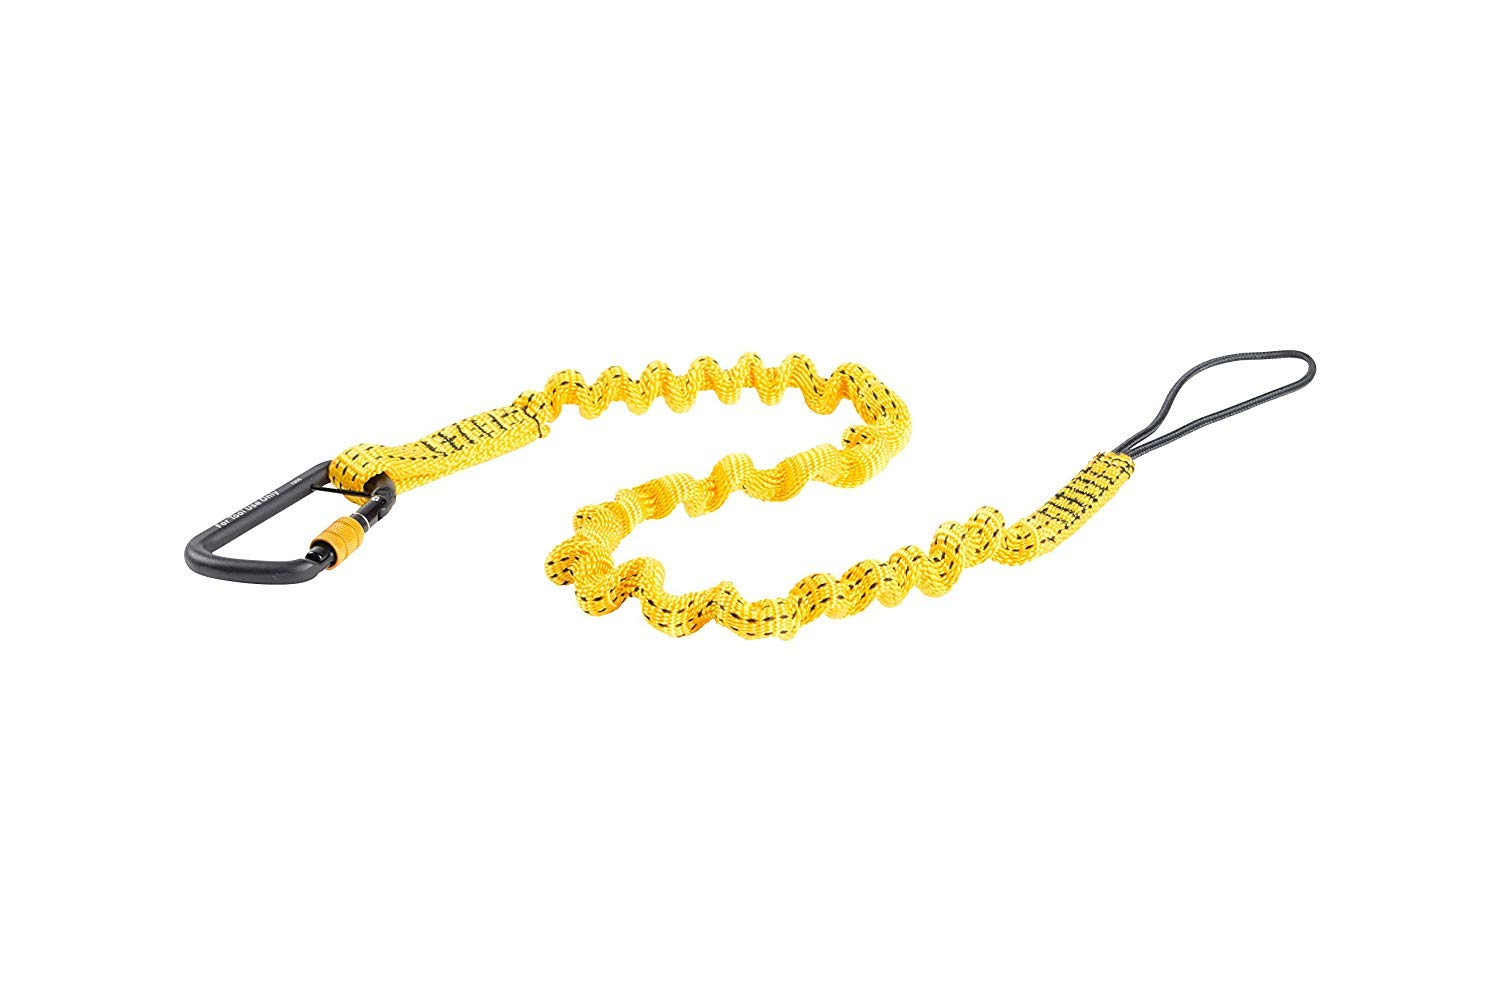 Python Safety 1500048 Hook2Loop Bungee Tether (2 Pack)